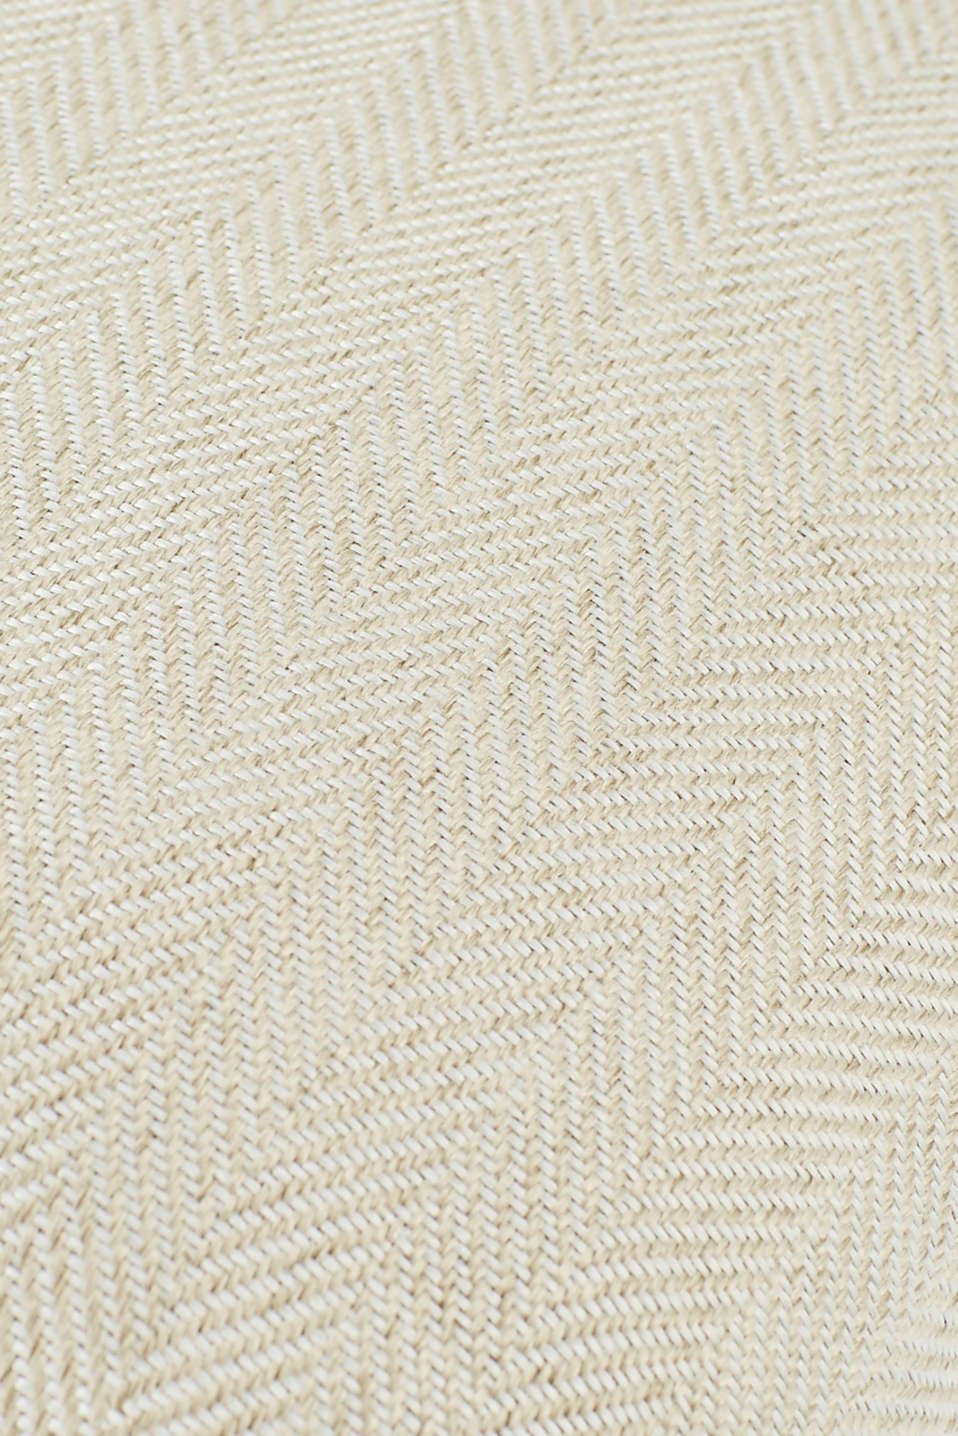 Baia woven cushion cover, NATURE, detail image number 2